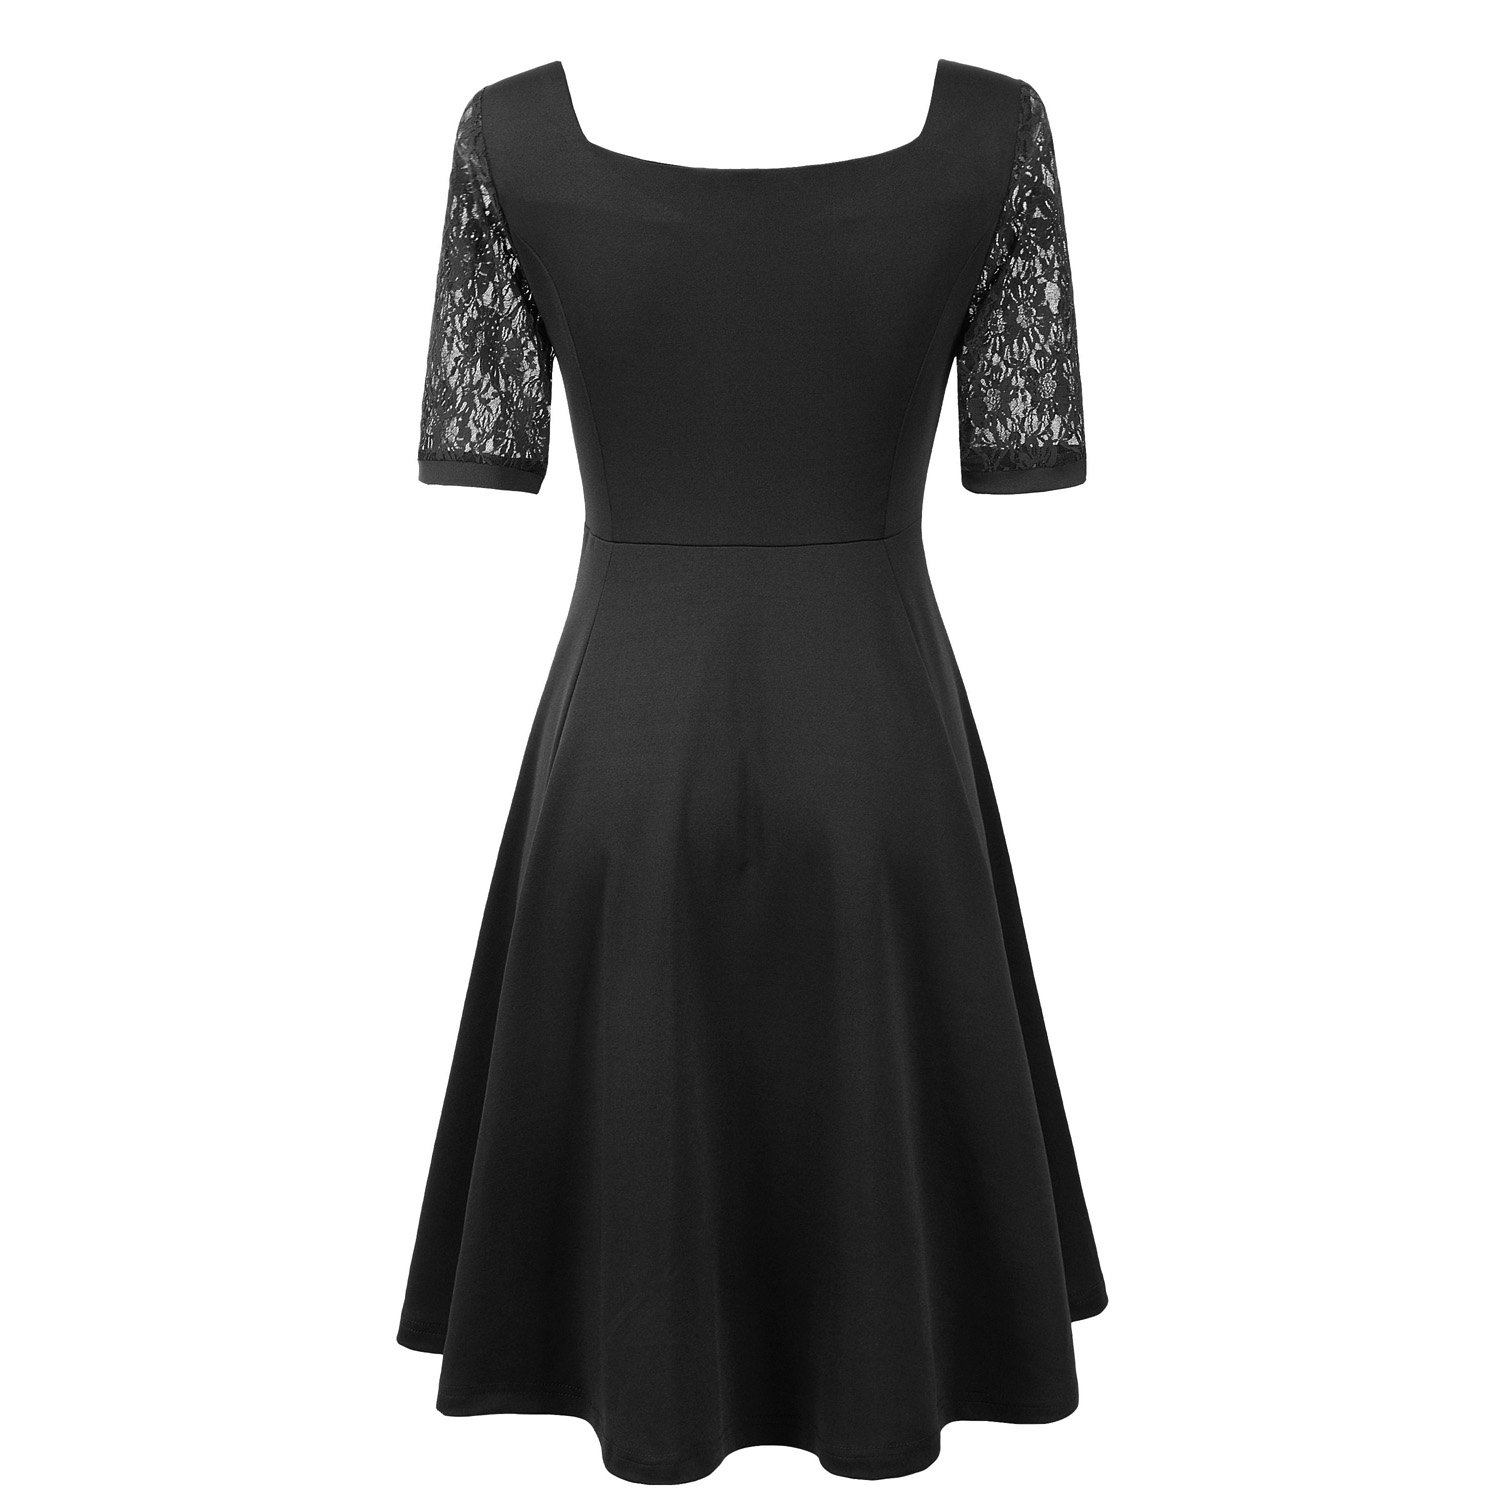 Pinup Fashion Womens Casual Lace Half Sleeves Dress Work Cocktail Party Swing Dresses Black X-Large: Amazon.co.uk: Clothing